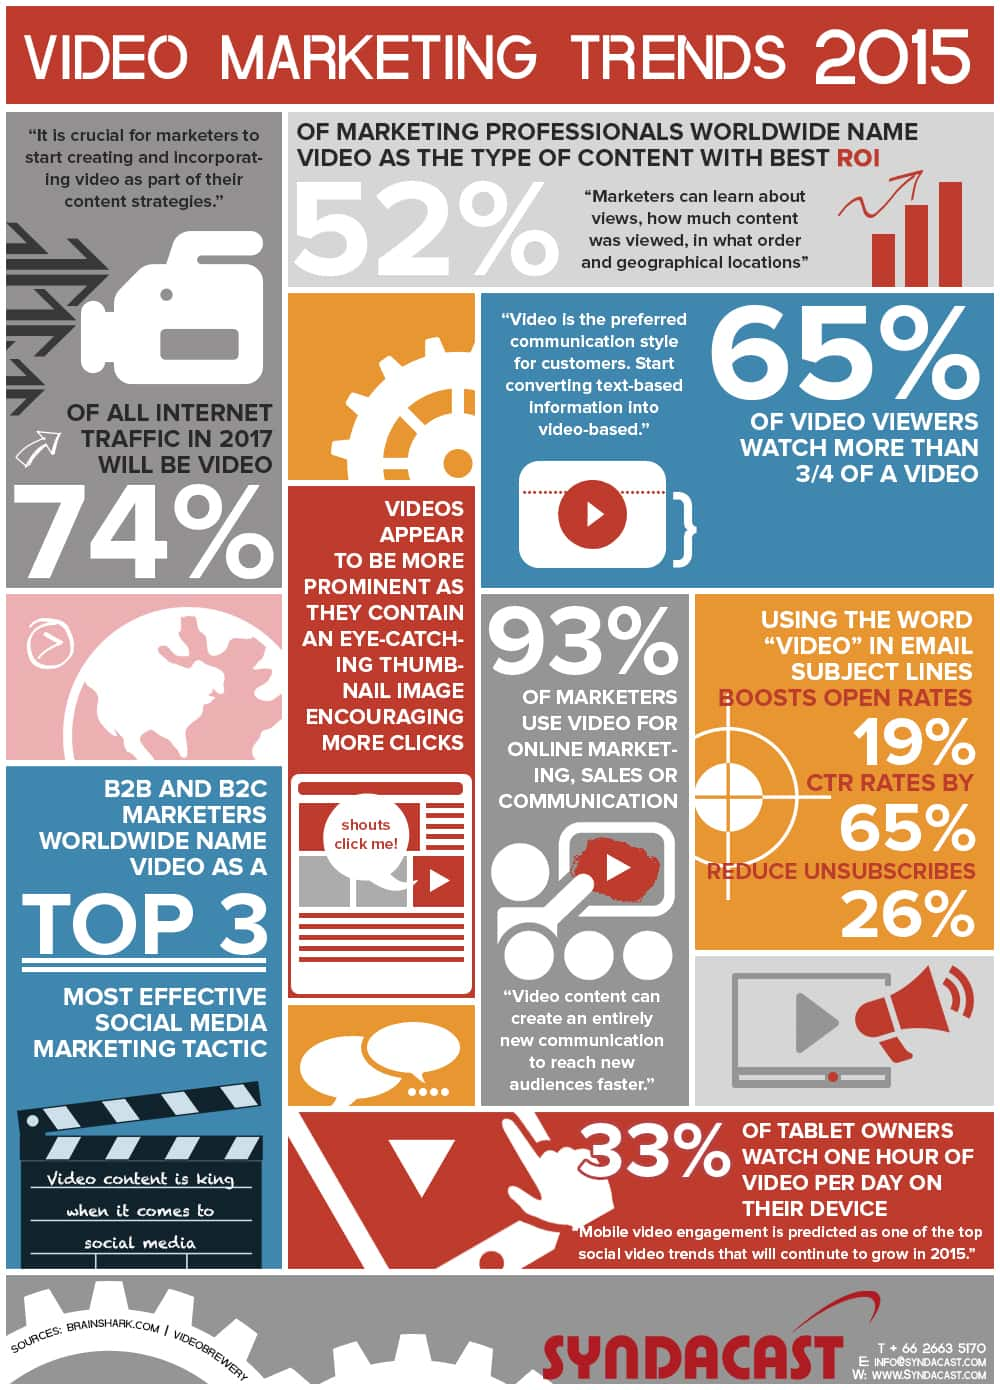 video-marketing-2015, provided by Syndacast.